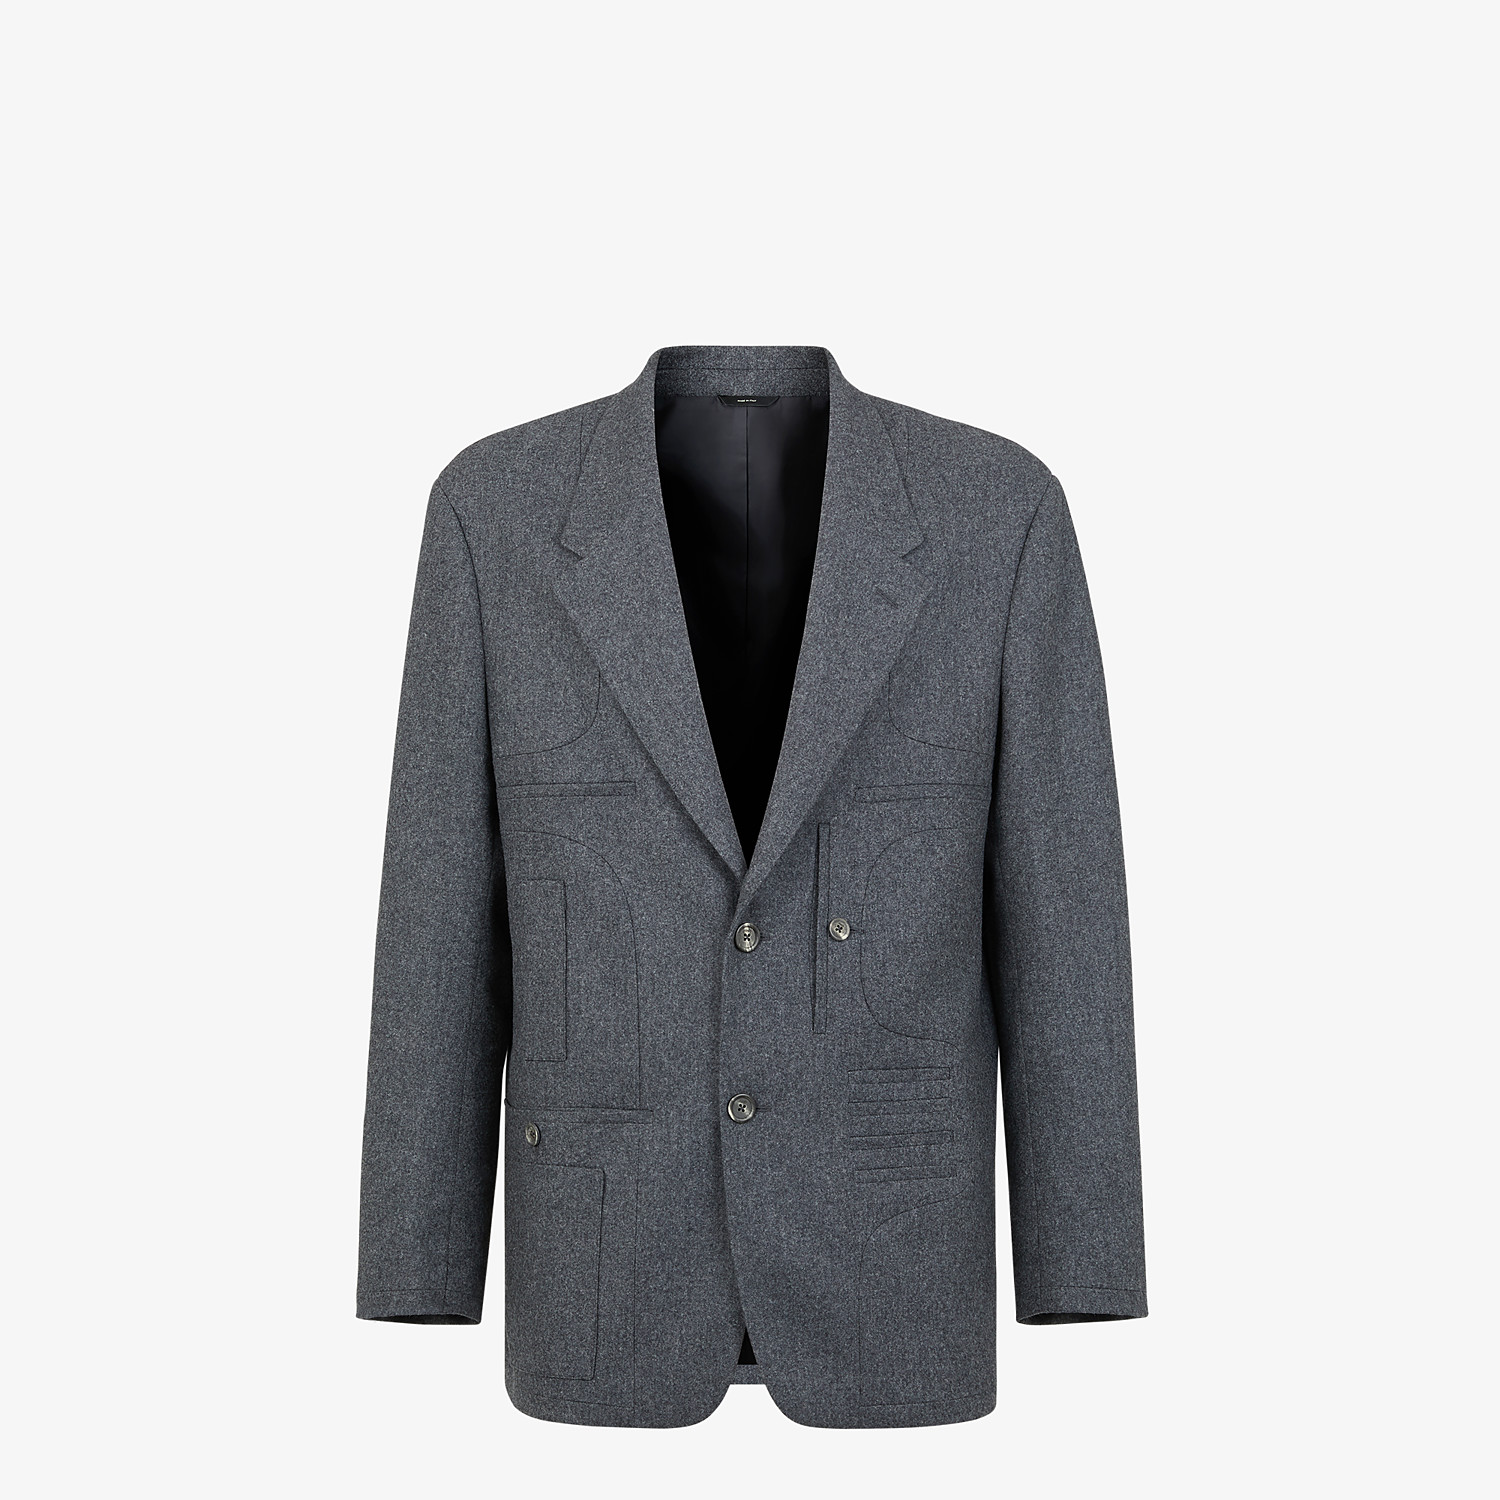 FENDI JACKET - Gray wool blazer - view 1 detail